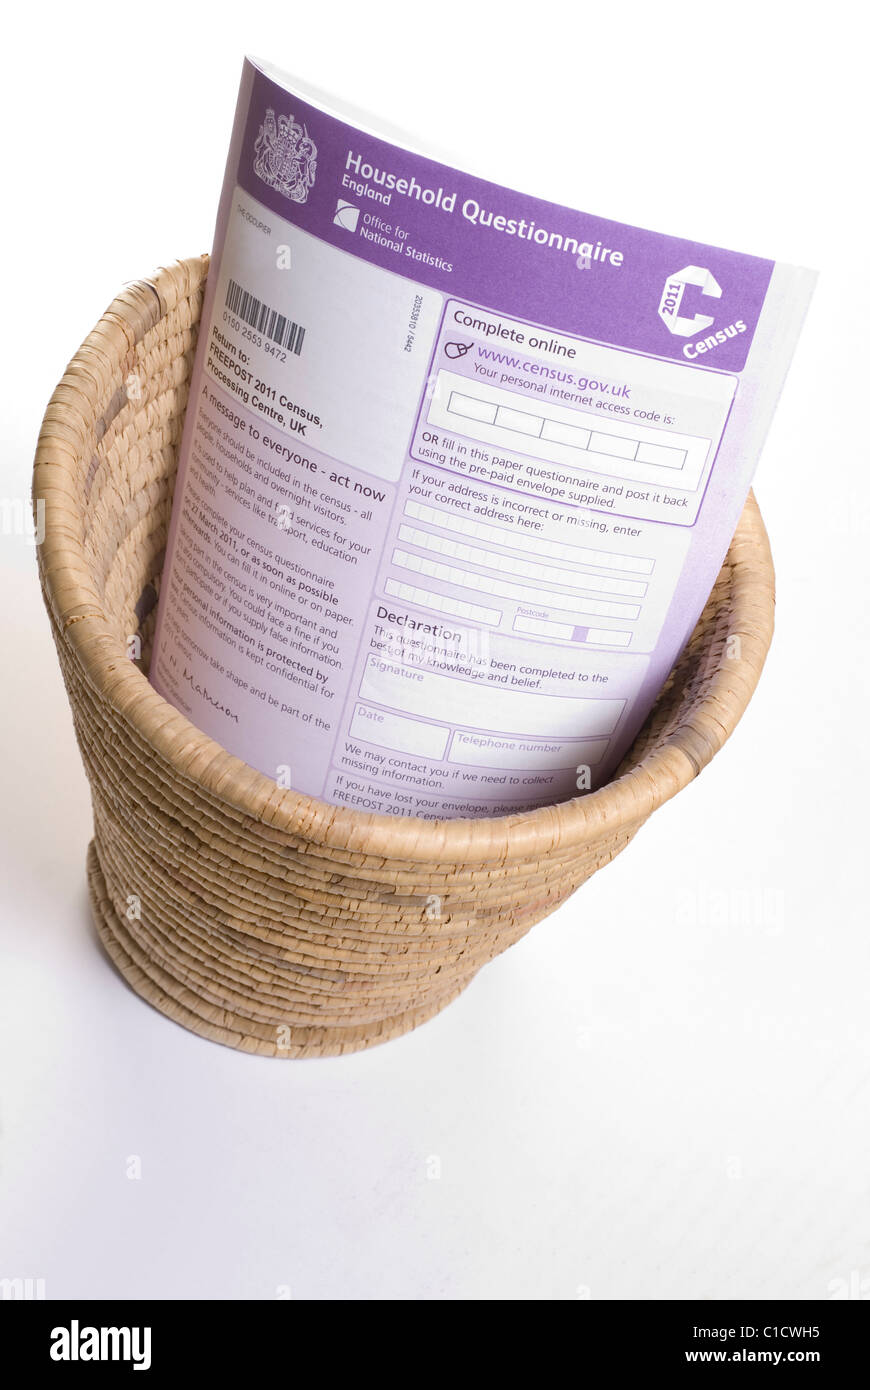 Census 2011 form in a wastepaper basket isolated for cutout or space for text - Stock Image